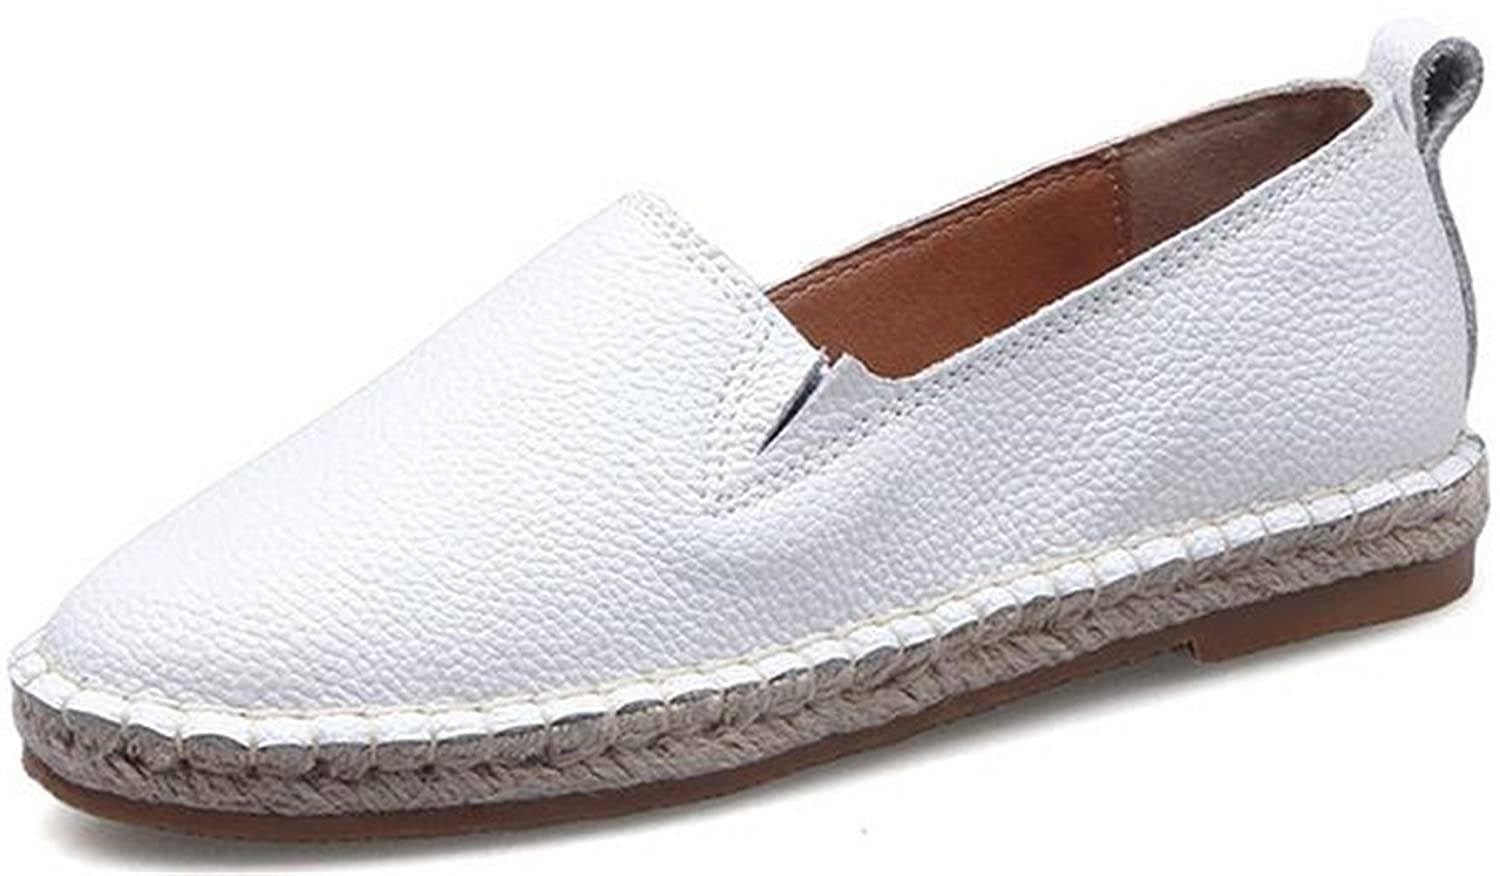 PPXID Women's Leather Flat Solid Color Slip-on Loafers Pumps Shoes